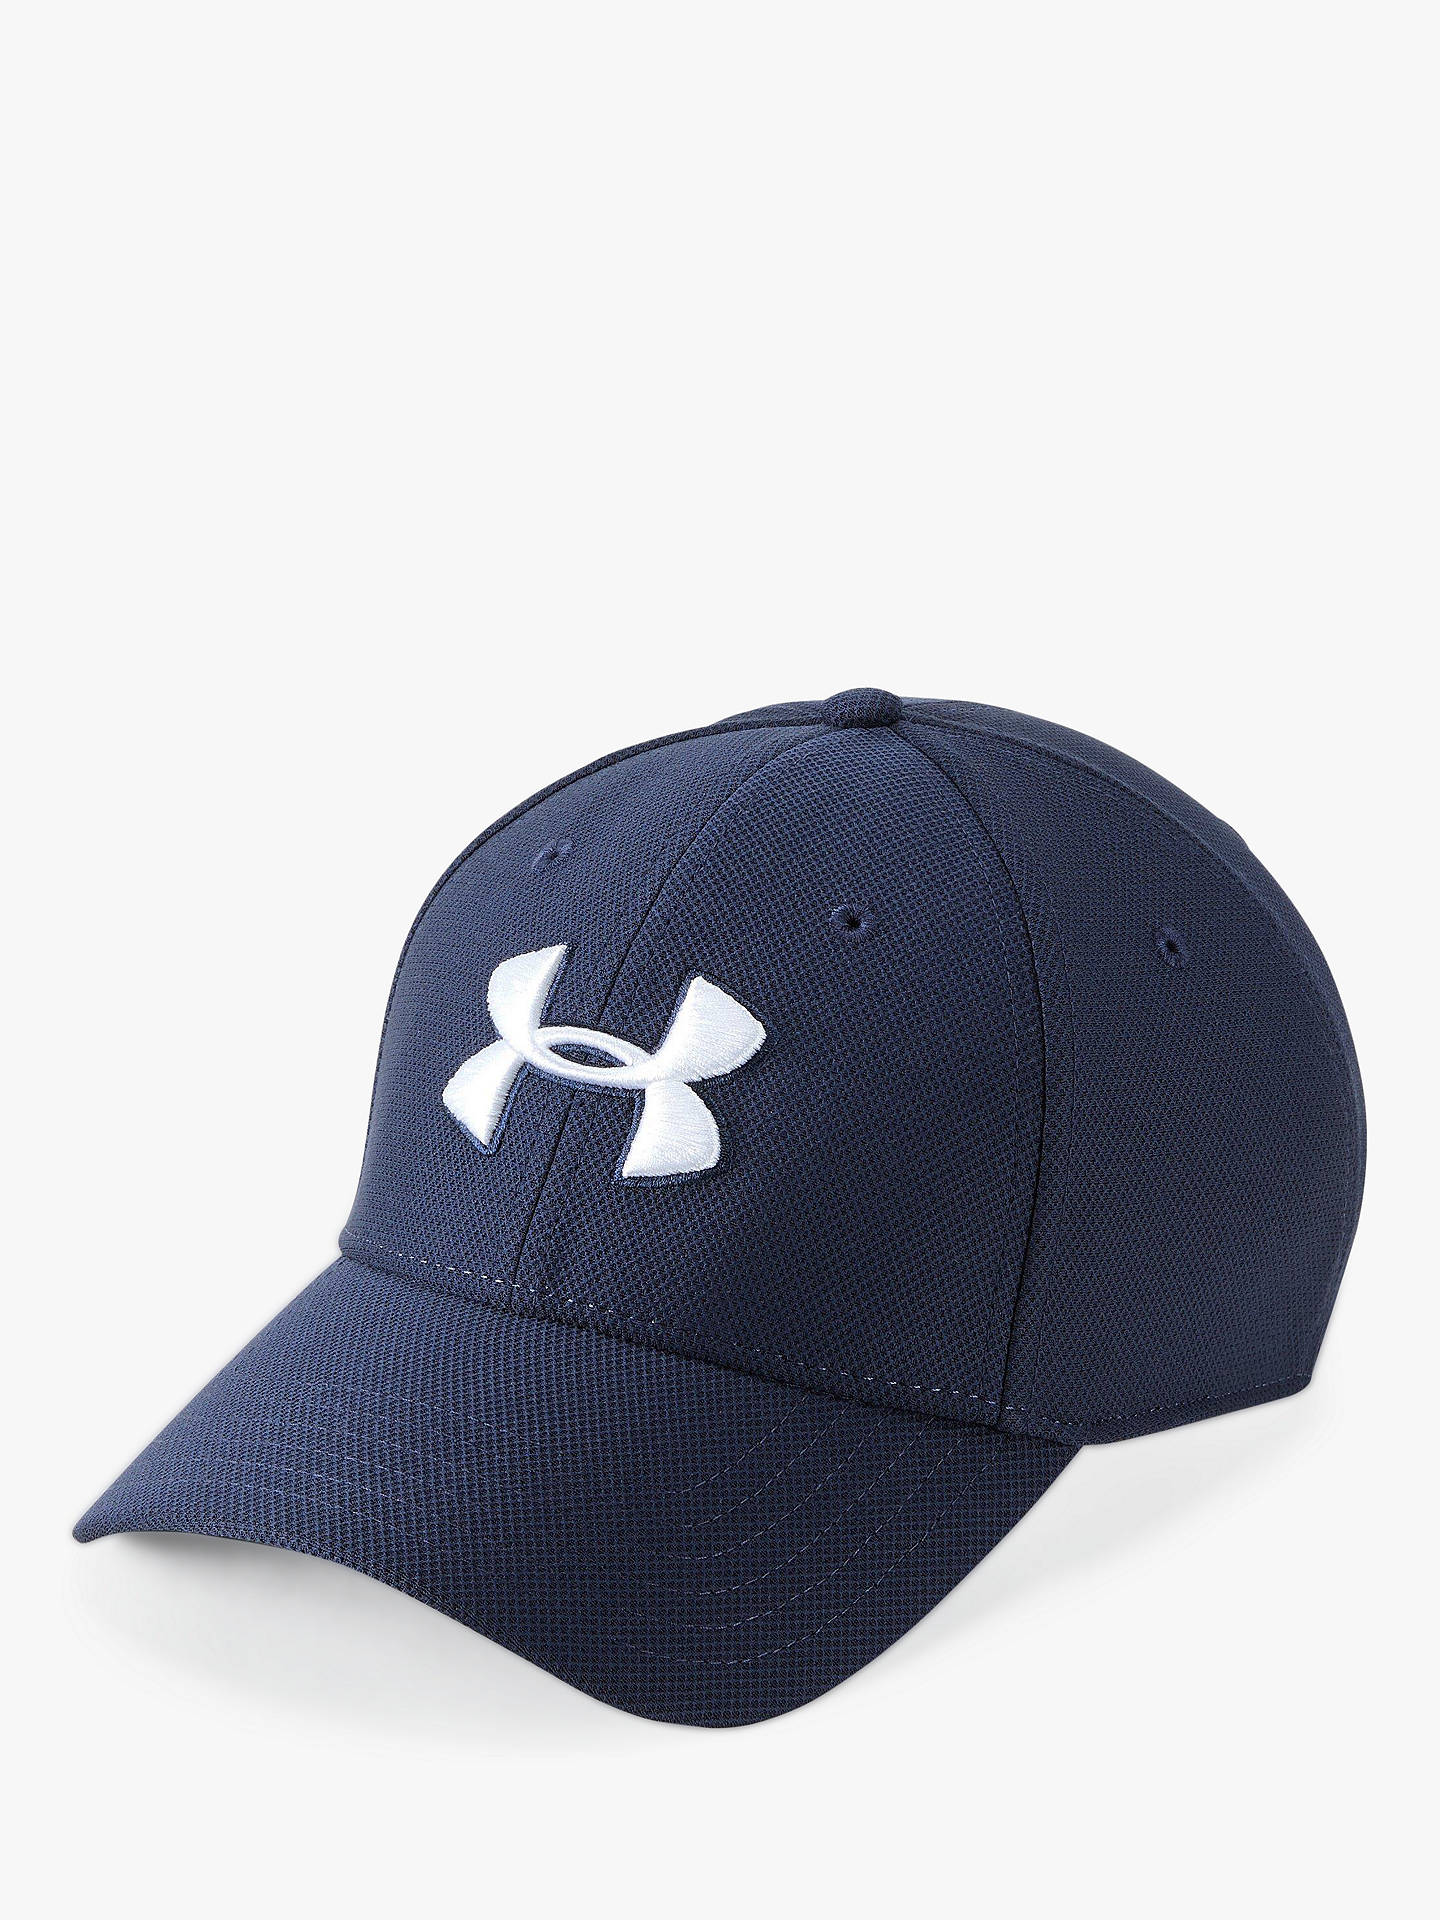 premium selection 8732a 346e7 Buy Under Armour Blitzing 3.0 Cap, Midnight Navy Online at johnlewis.com ...